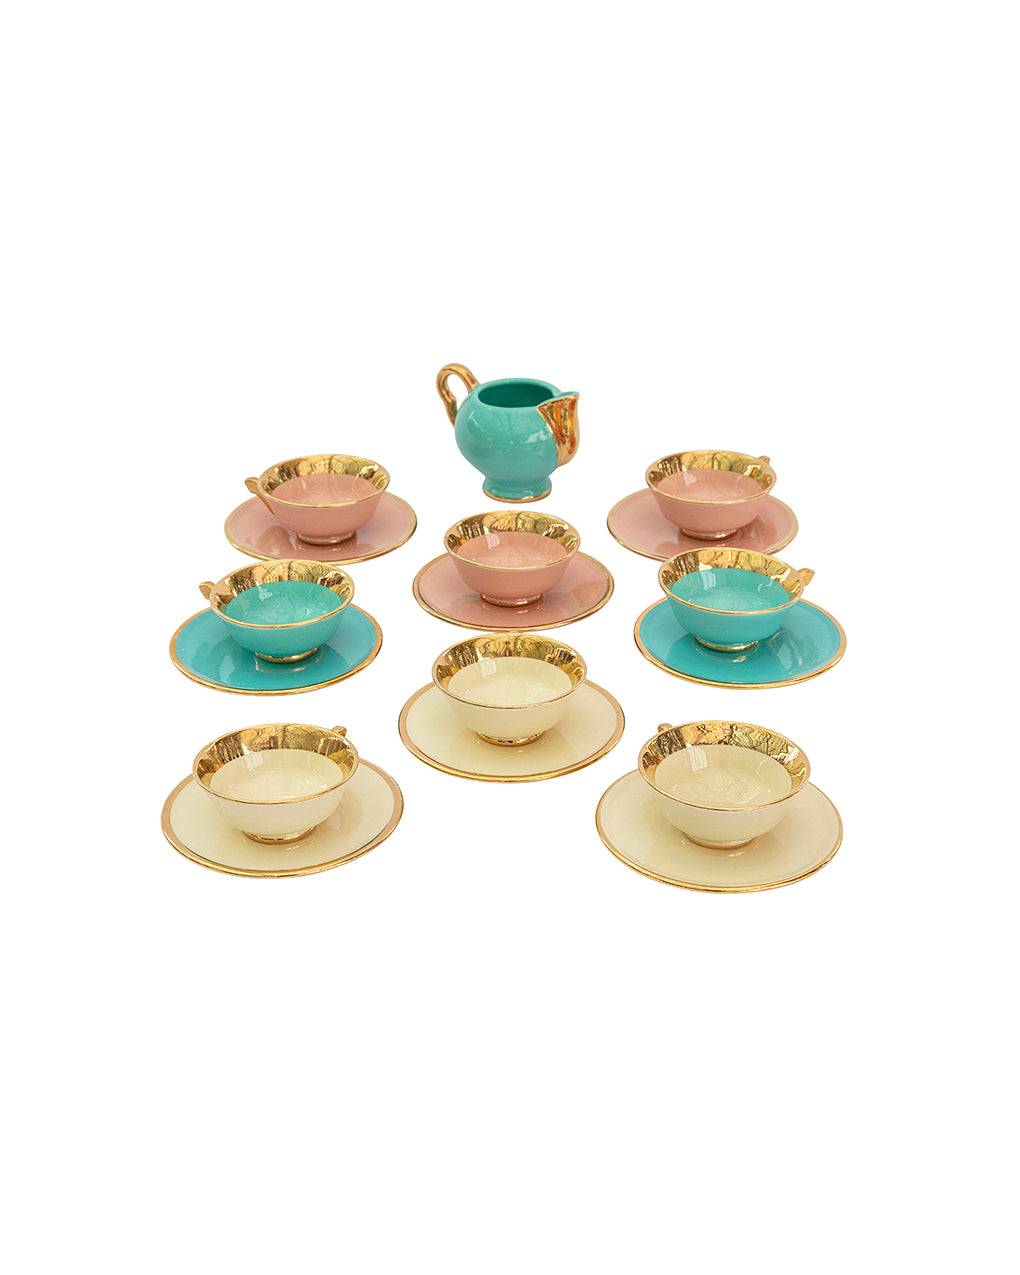 Porcelain set with a golden rim